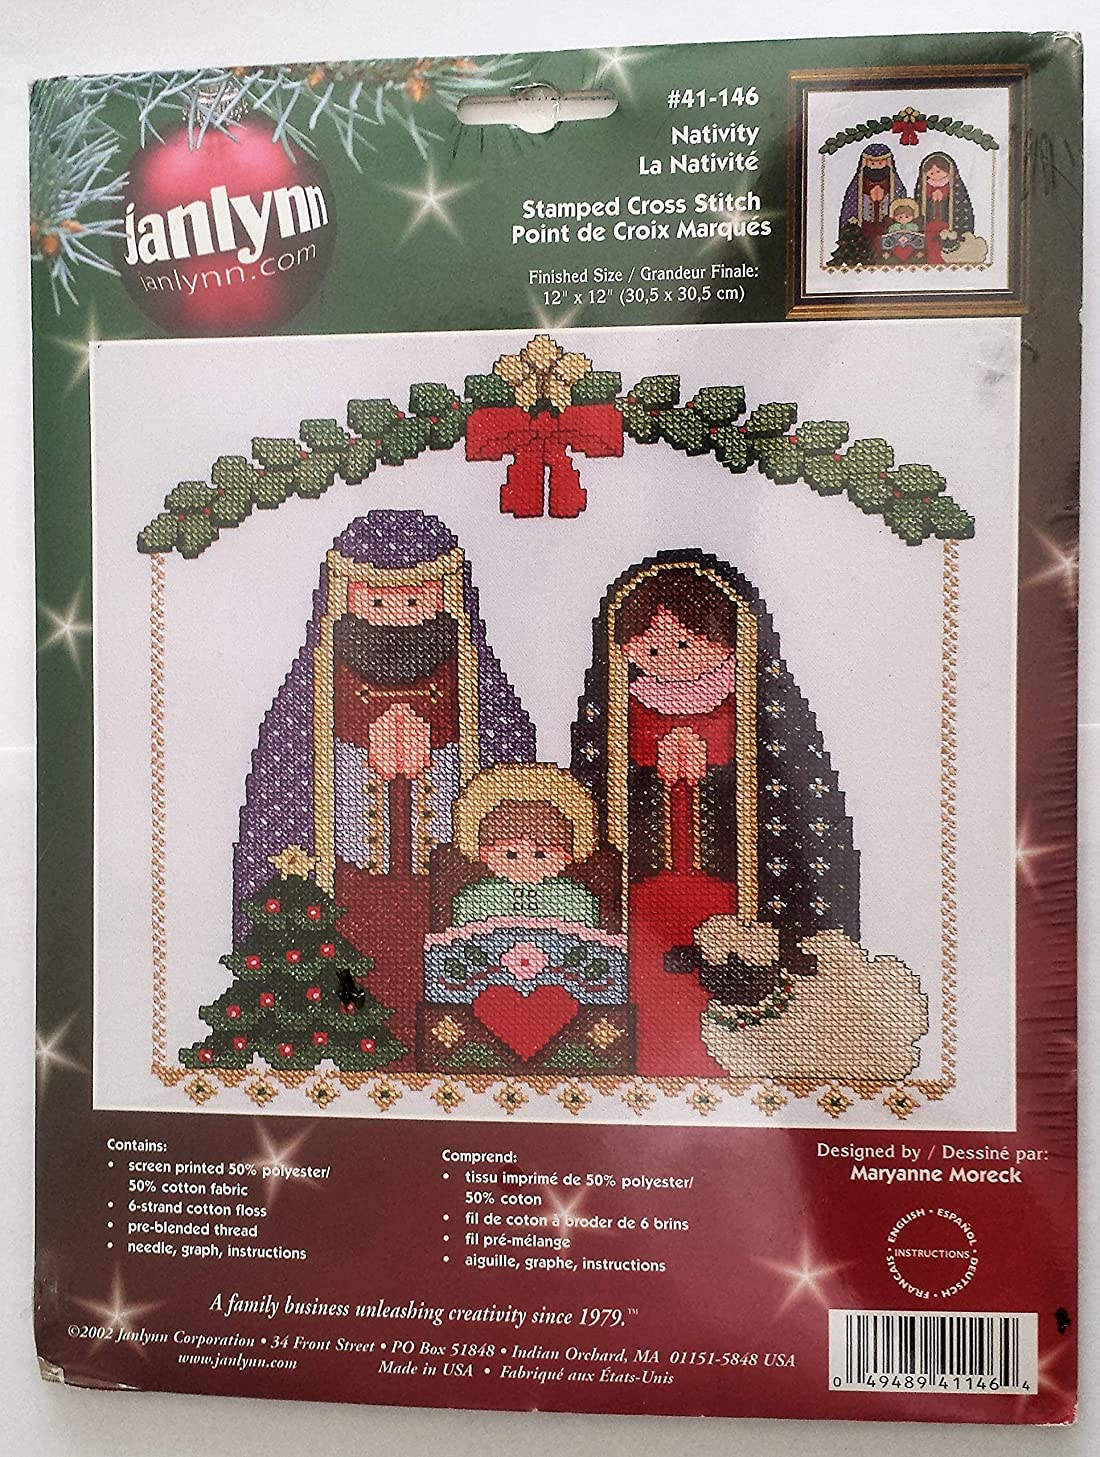 Janlynn #41-146 Nativity Stamped Cross Stitch 12